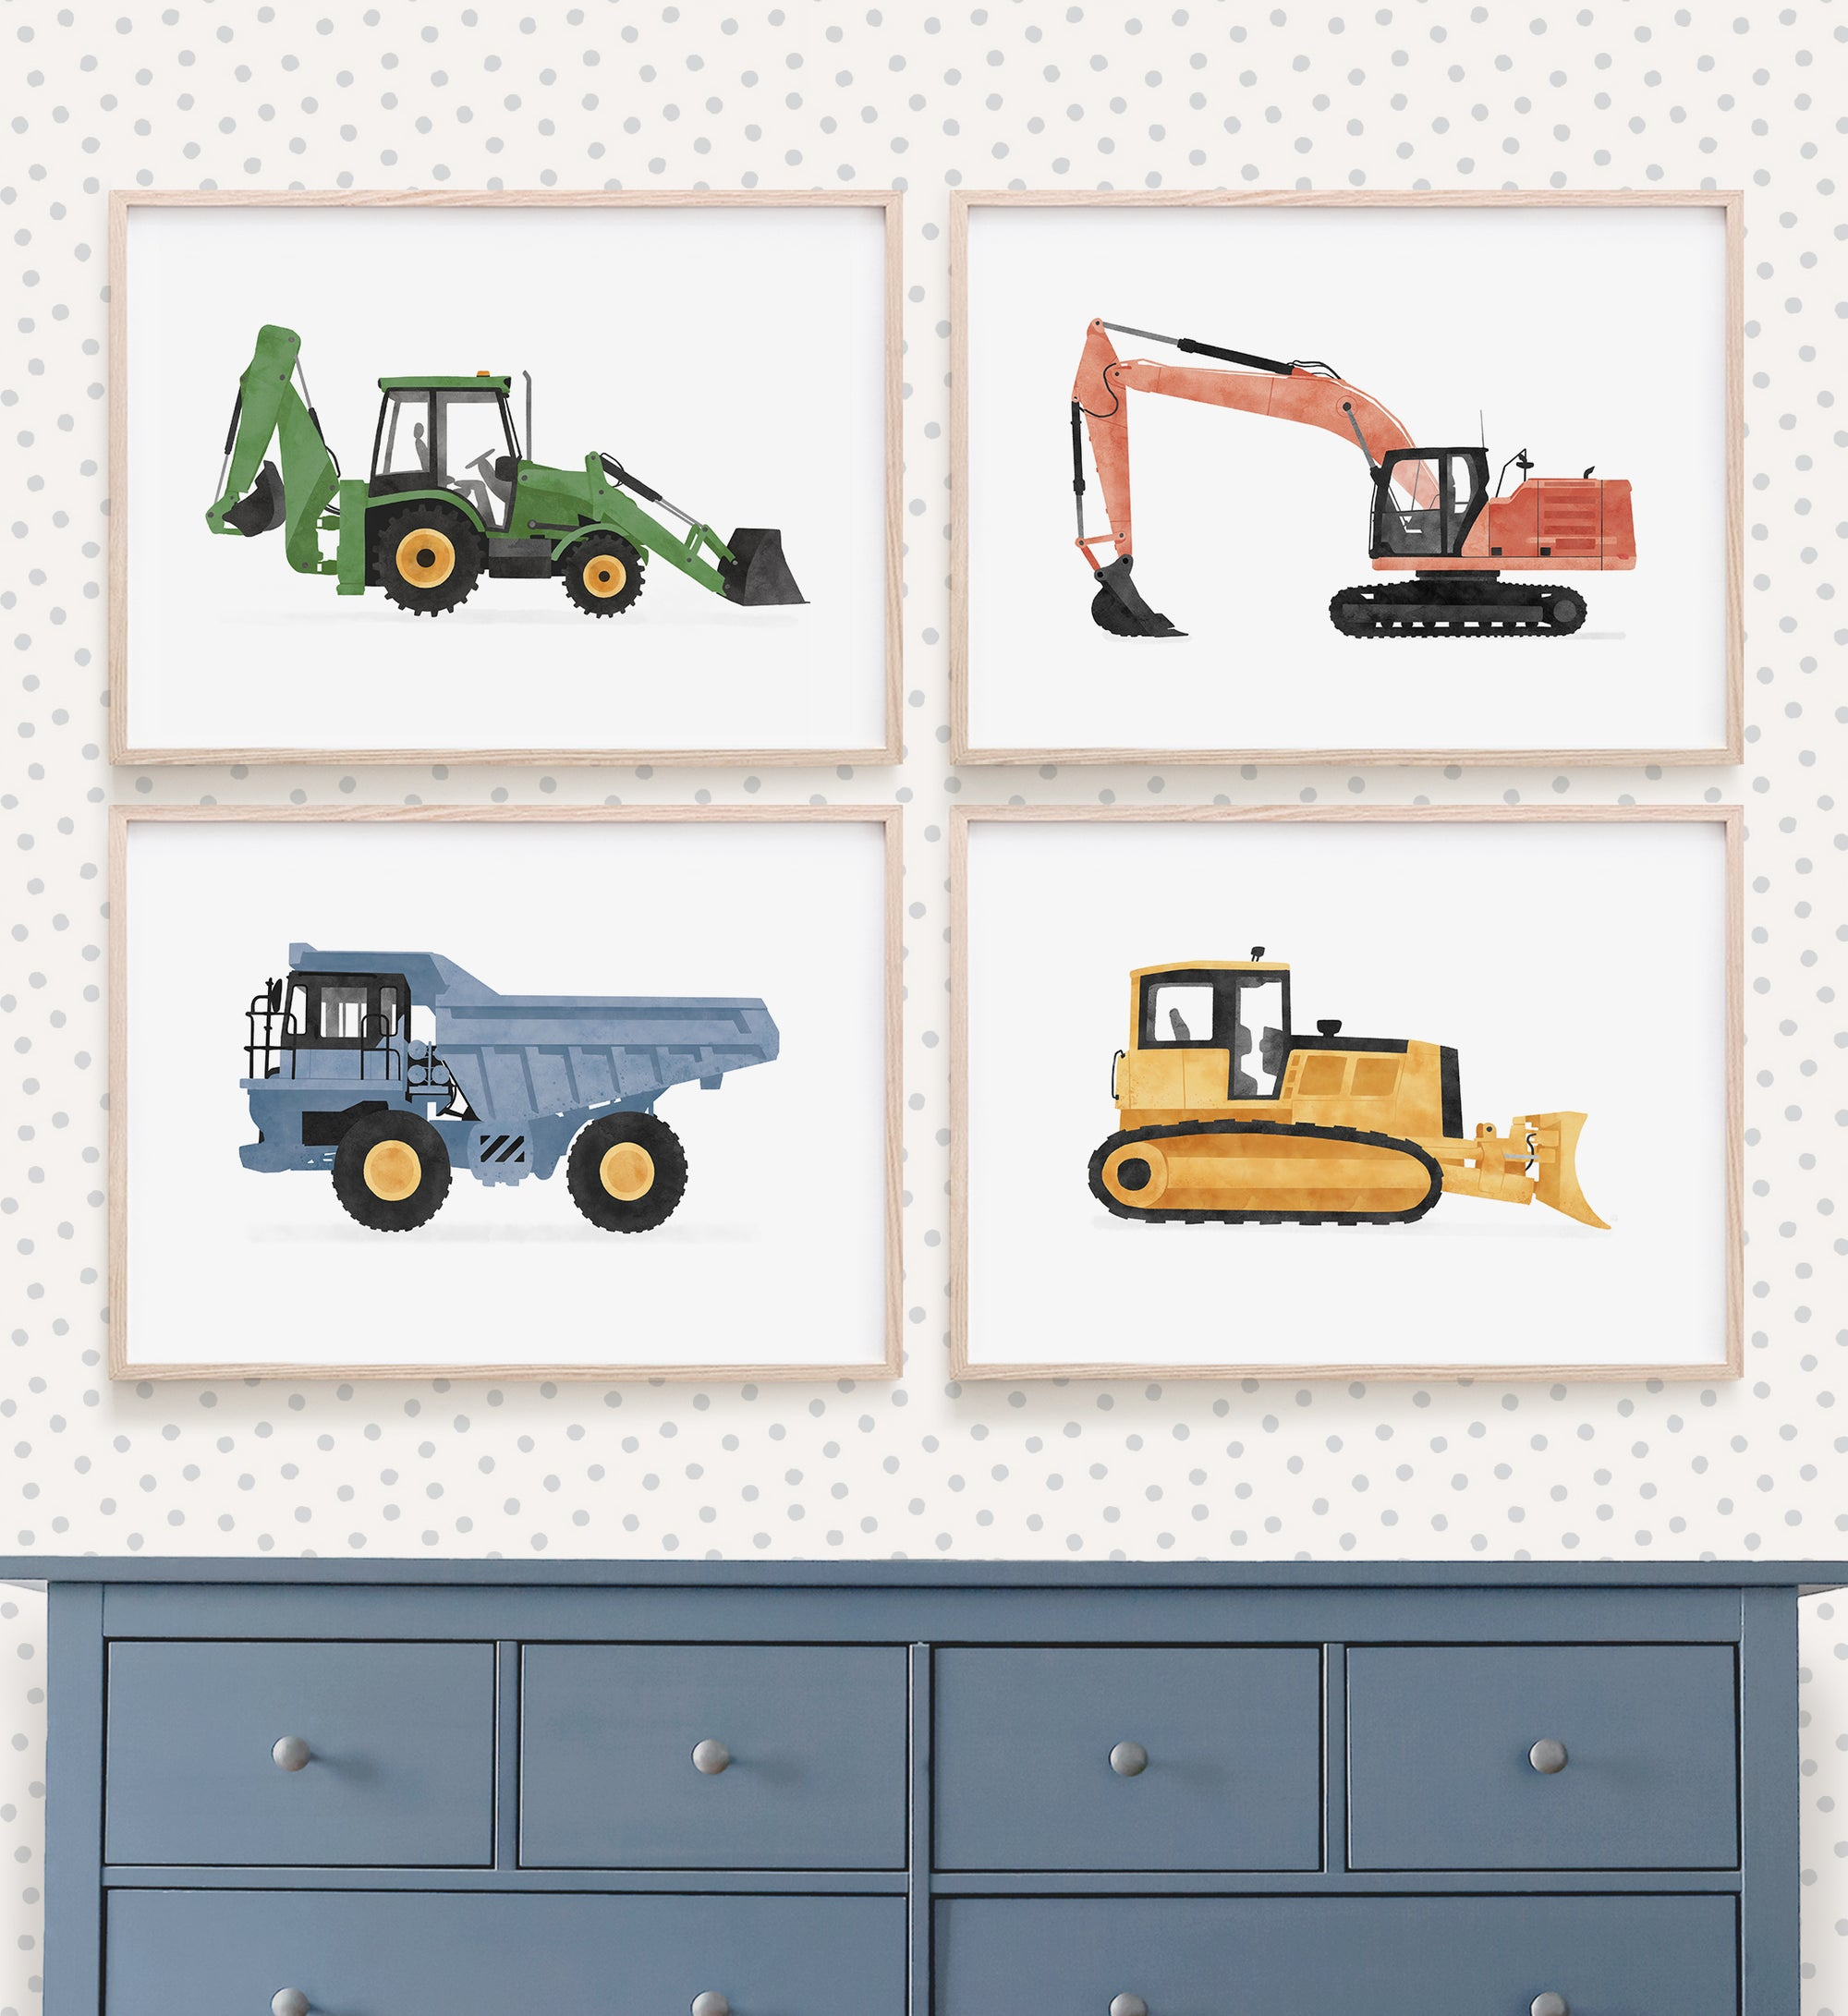 Set of 4 Construction Vehicles - Colorful